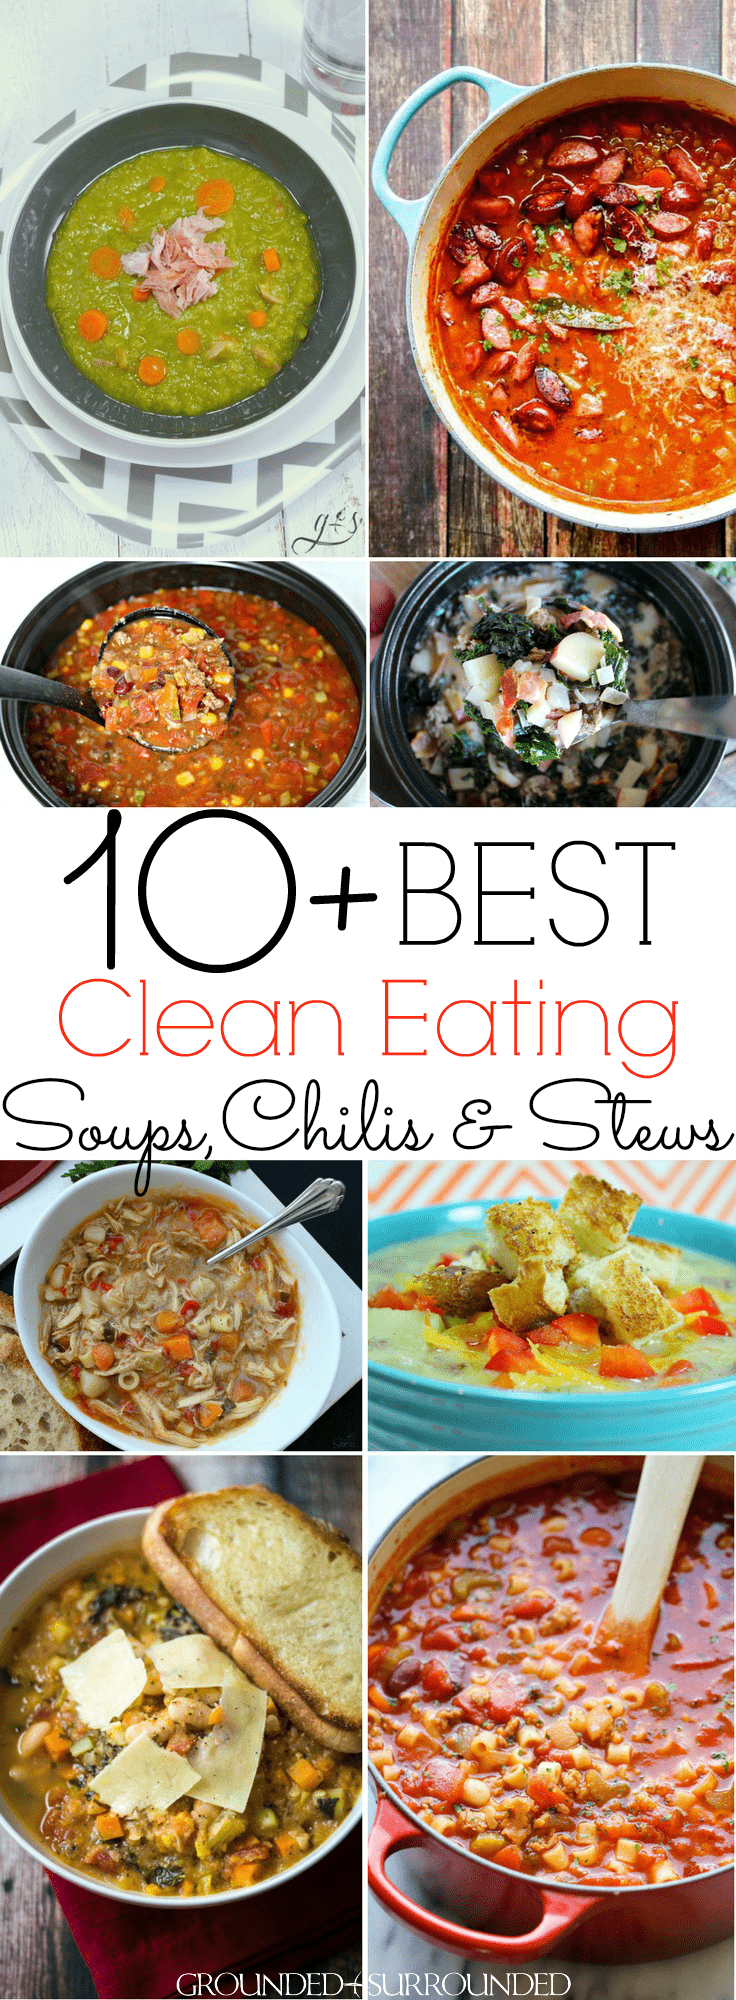 The 10+ BEST Clean Eating Soup, Chili & Stew Recipes | These healthy and quick one-pot meals are perfect for lunch or dinner! Hearty taco {crockpot}, easy minestrone, and low carb cheeseburger soups will tantalize your tastebuds. Whether you want chicken, beef, or ground turkey these are for you or maybe you want to keep it vegetarian (vegan) with lentils and vegetables. Most are gluten free, dairy free, Paleo, and 21 Day Fix and Weight Watchers diet friendly.